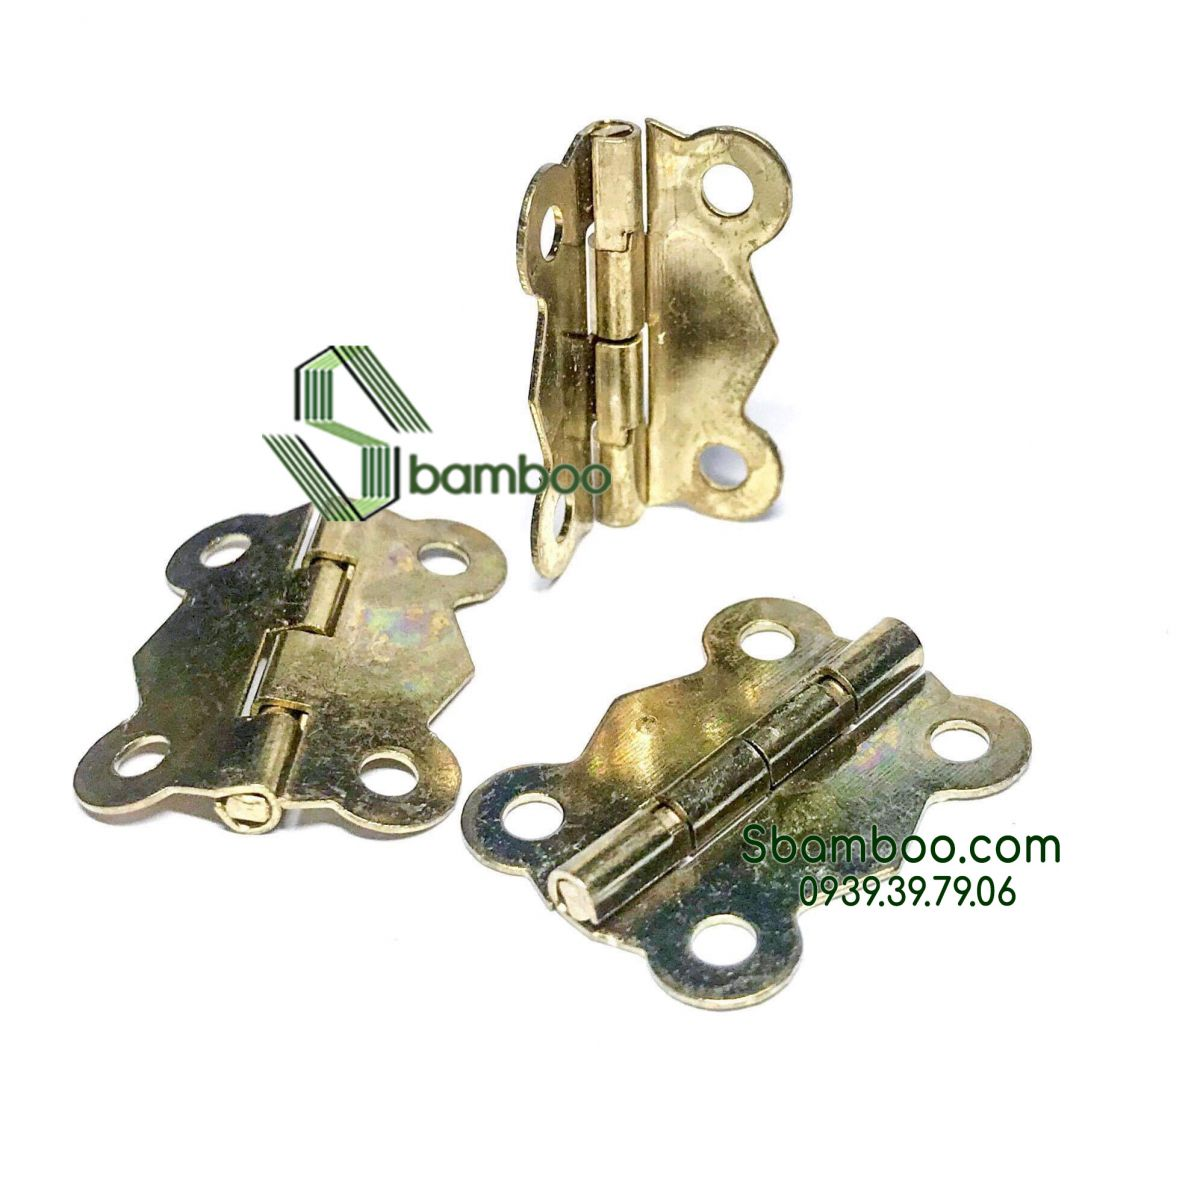 50 mini hinges classical color M02 (included screws)